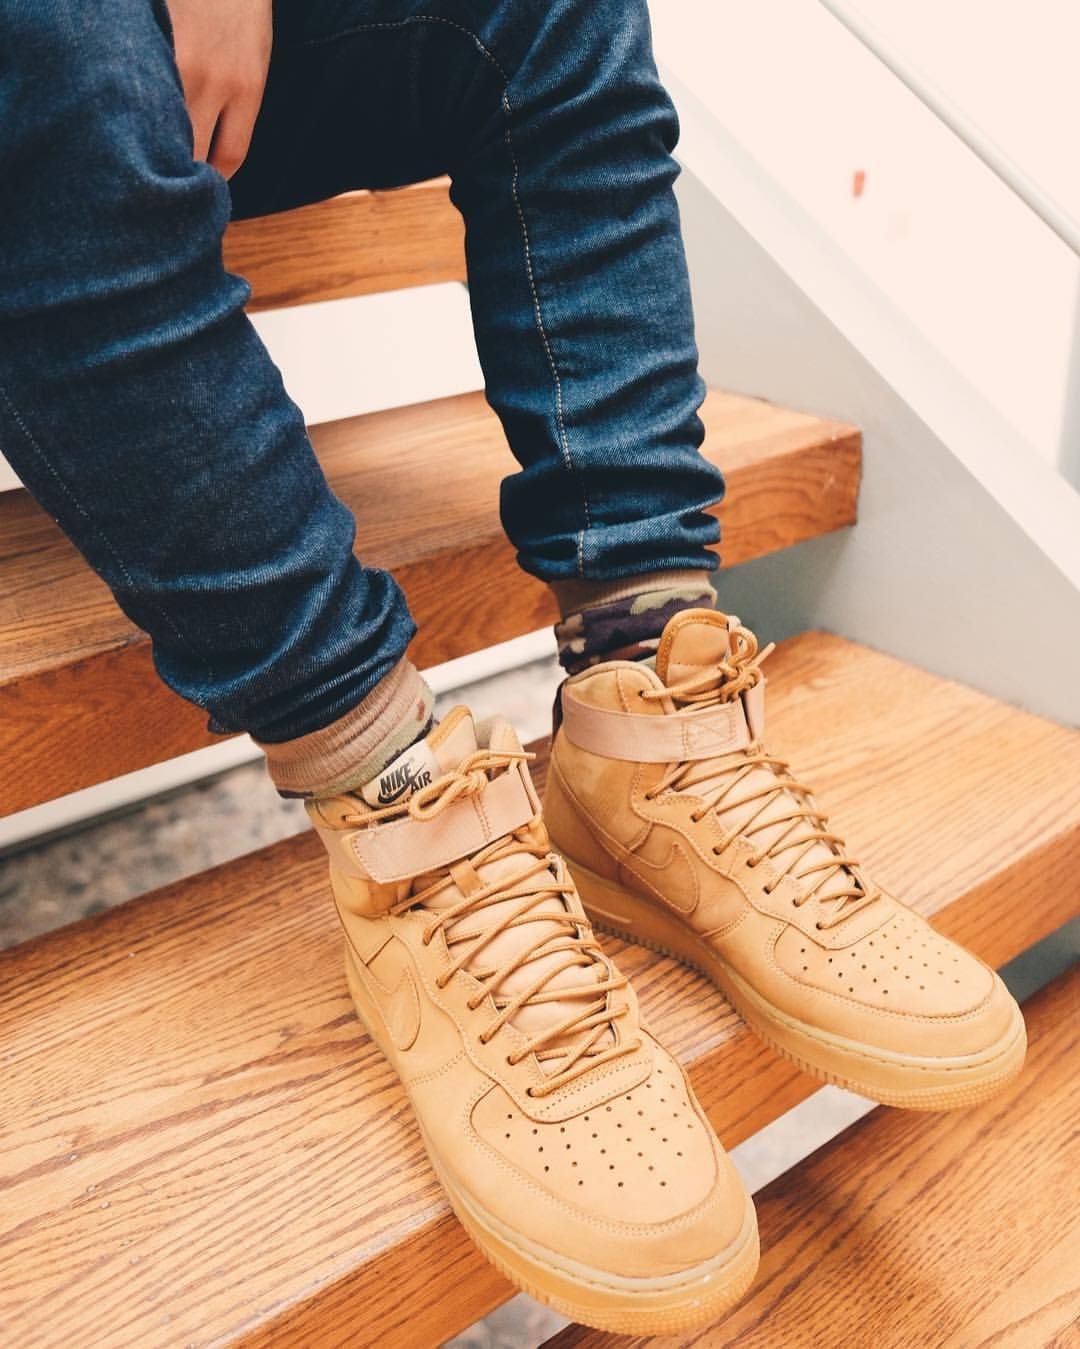 Pin by Christopher on Street styles | Nike af1, Vans style